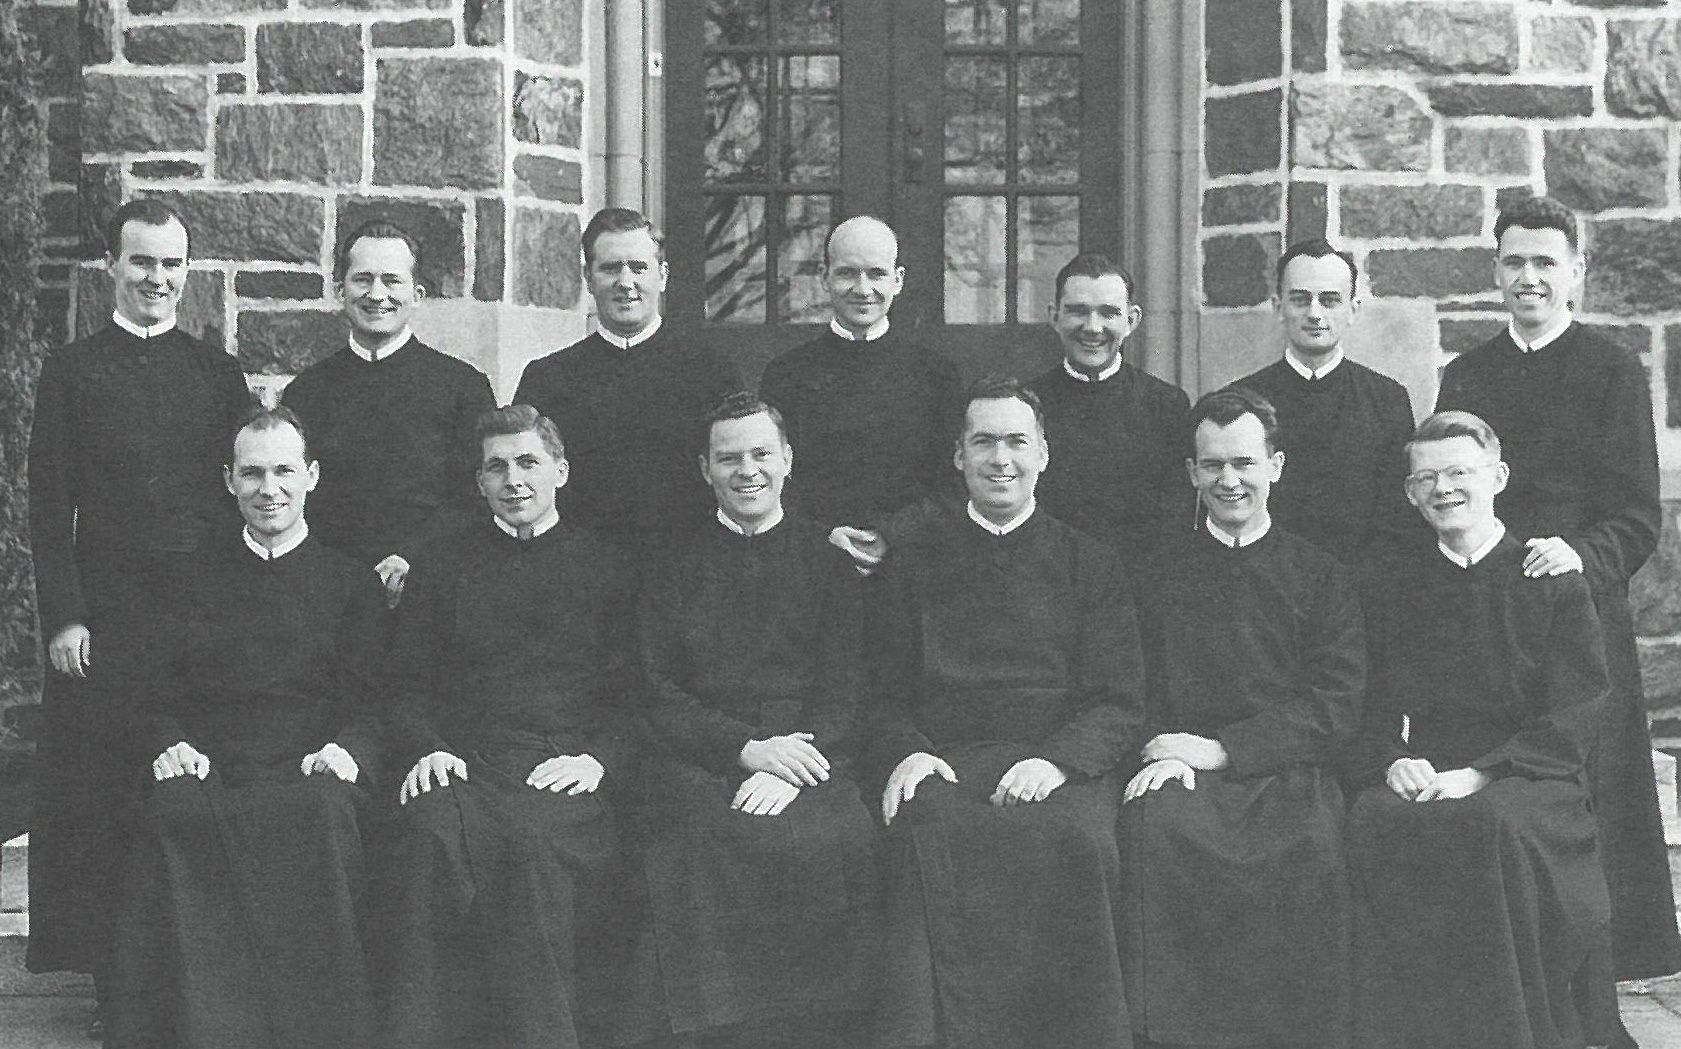 The Paulist Fathers' ordination Class of 1953. This picture appeared in the March 30, 2003 issue of Paulist Today.